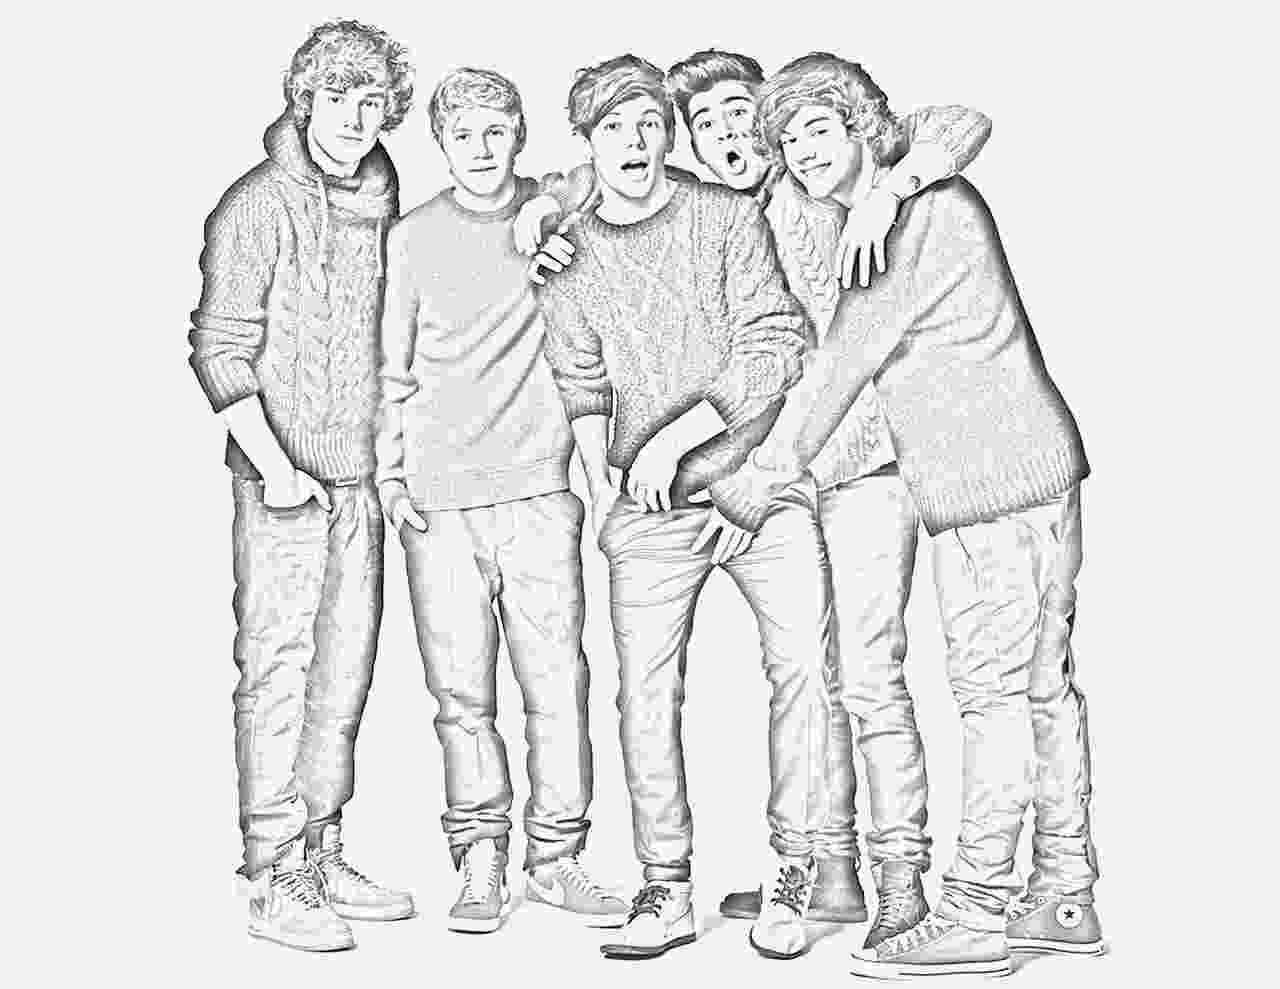 colouring pages for one direction 画像 one directionワンダイレクションの塗り絵ぬりえ無料テンプレートイラスト素材 one pages direction colouring for